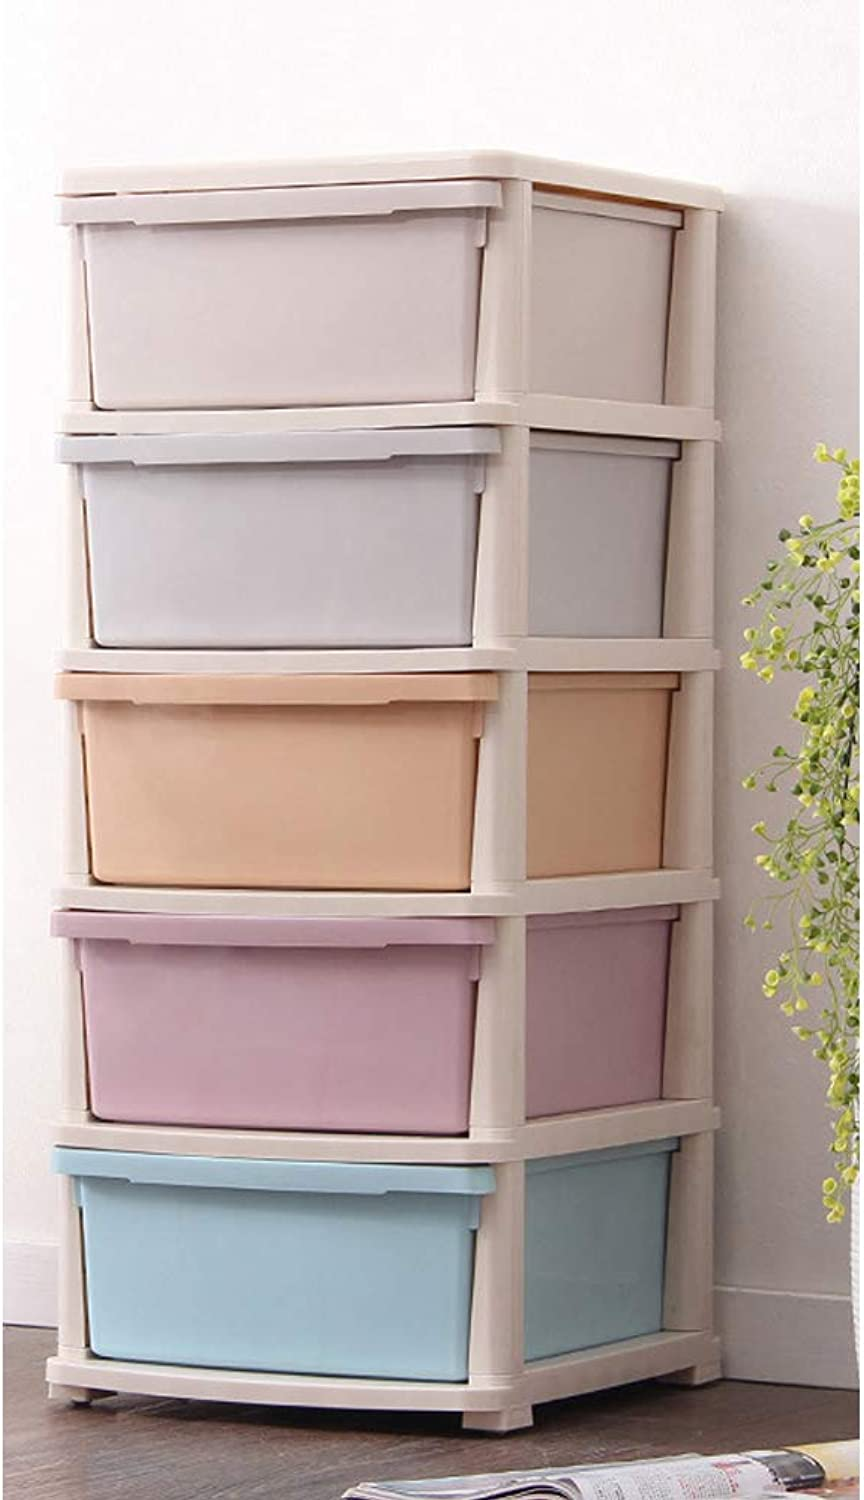 Storage case Storage Box Chest Side Box Drawer Slim Hanger Caster Storage Wardrobe Toy Accessories Large Capacity Clothing Handy Goods 5 Stages 34 Wide ice Cream